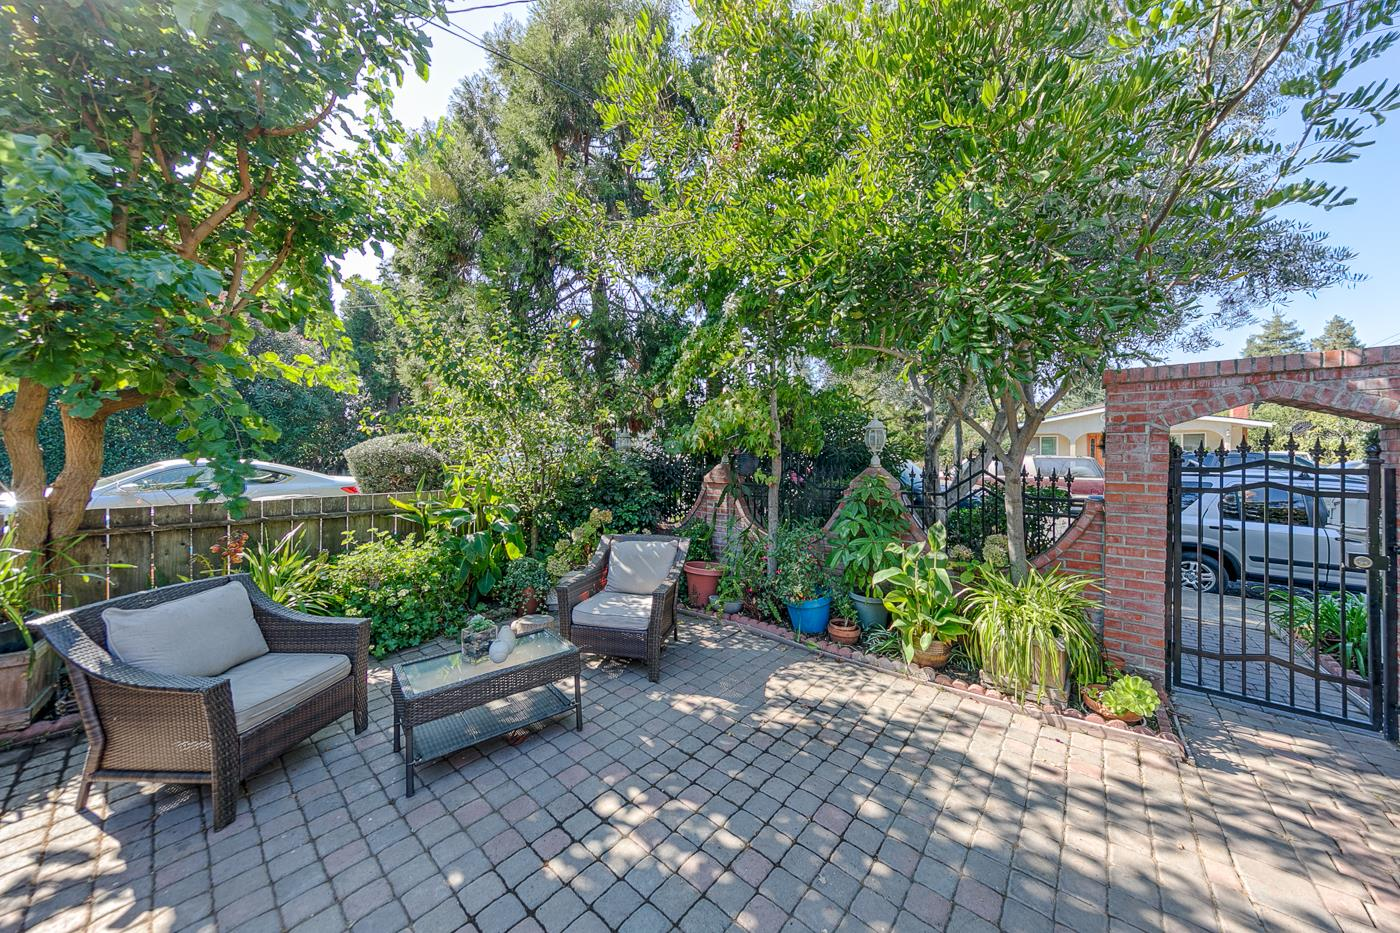 676 4th Avenue Redwood City, CA 94063 - MLS #: ML81728825